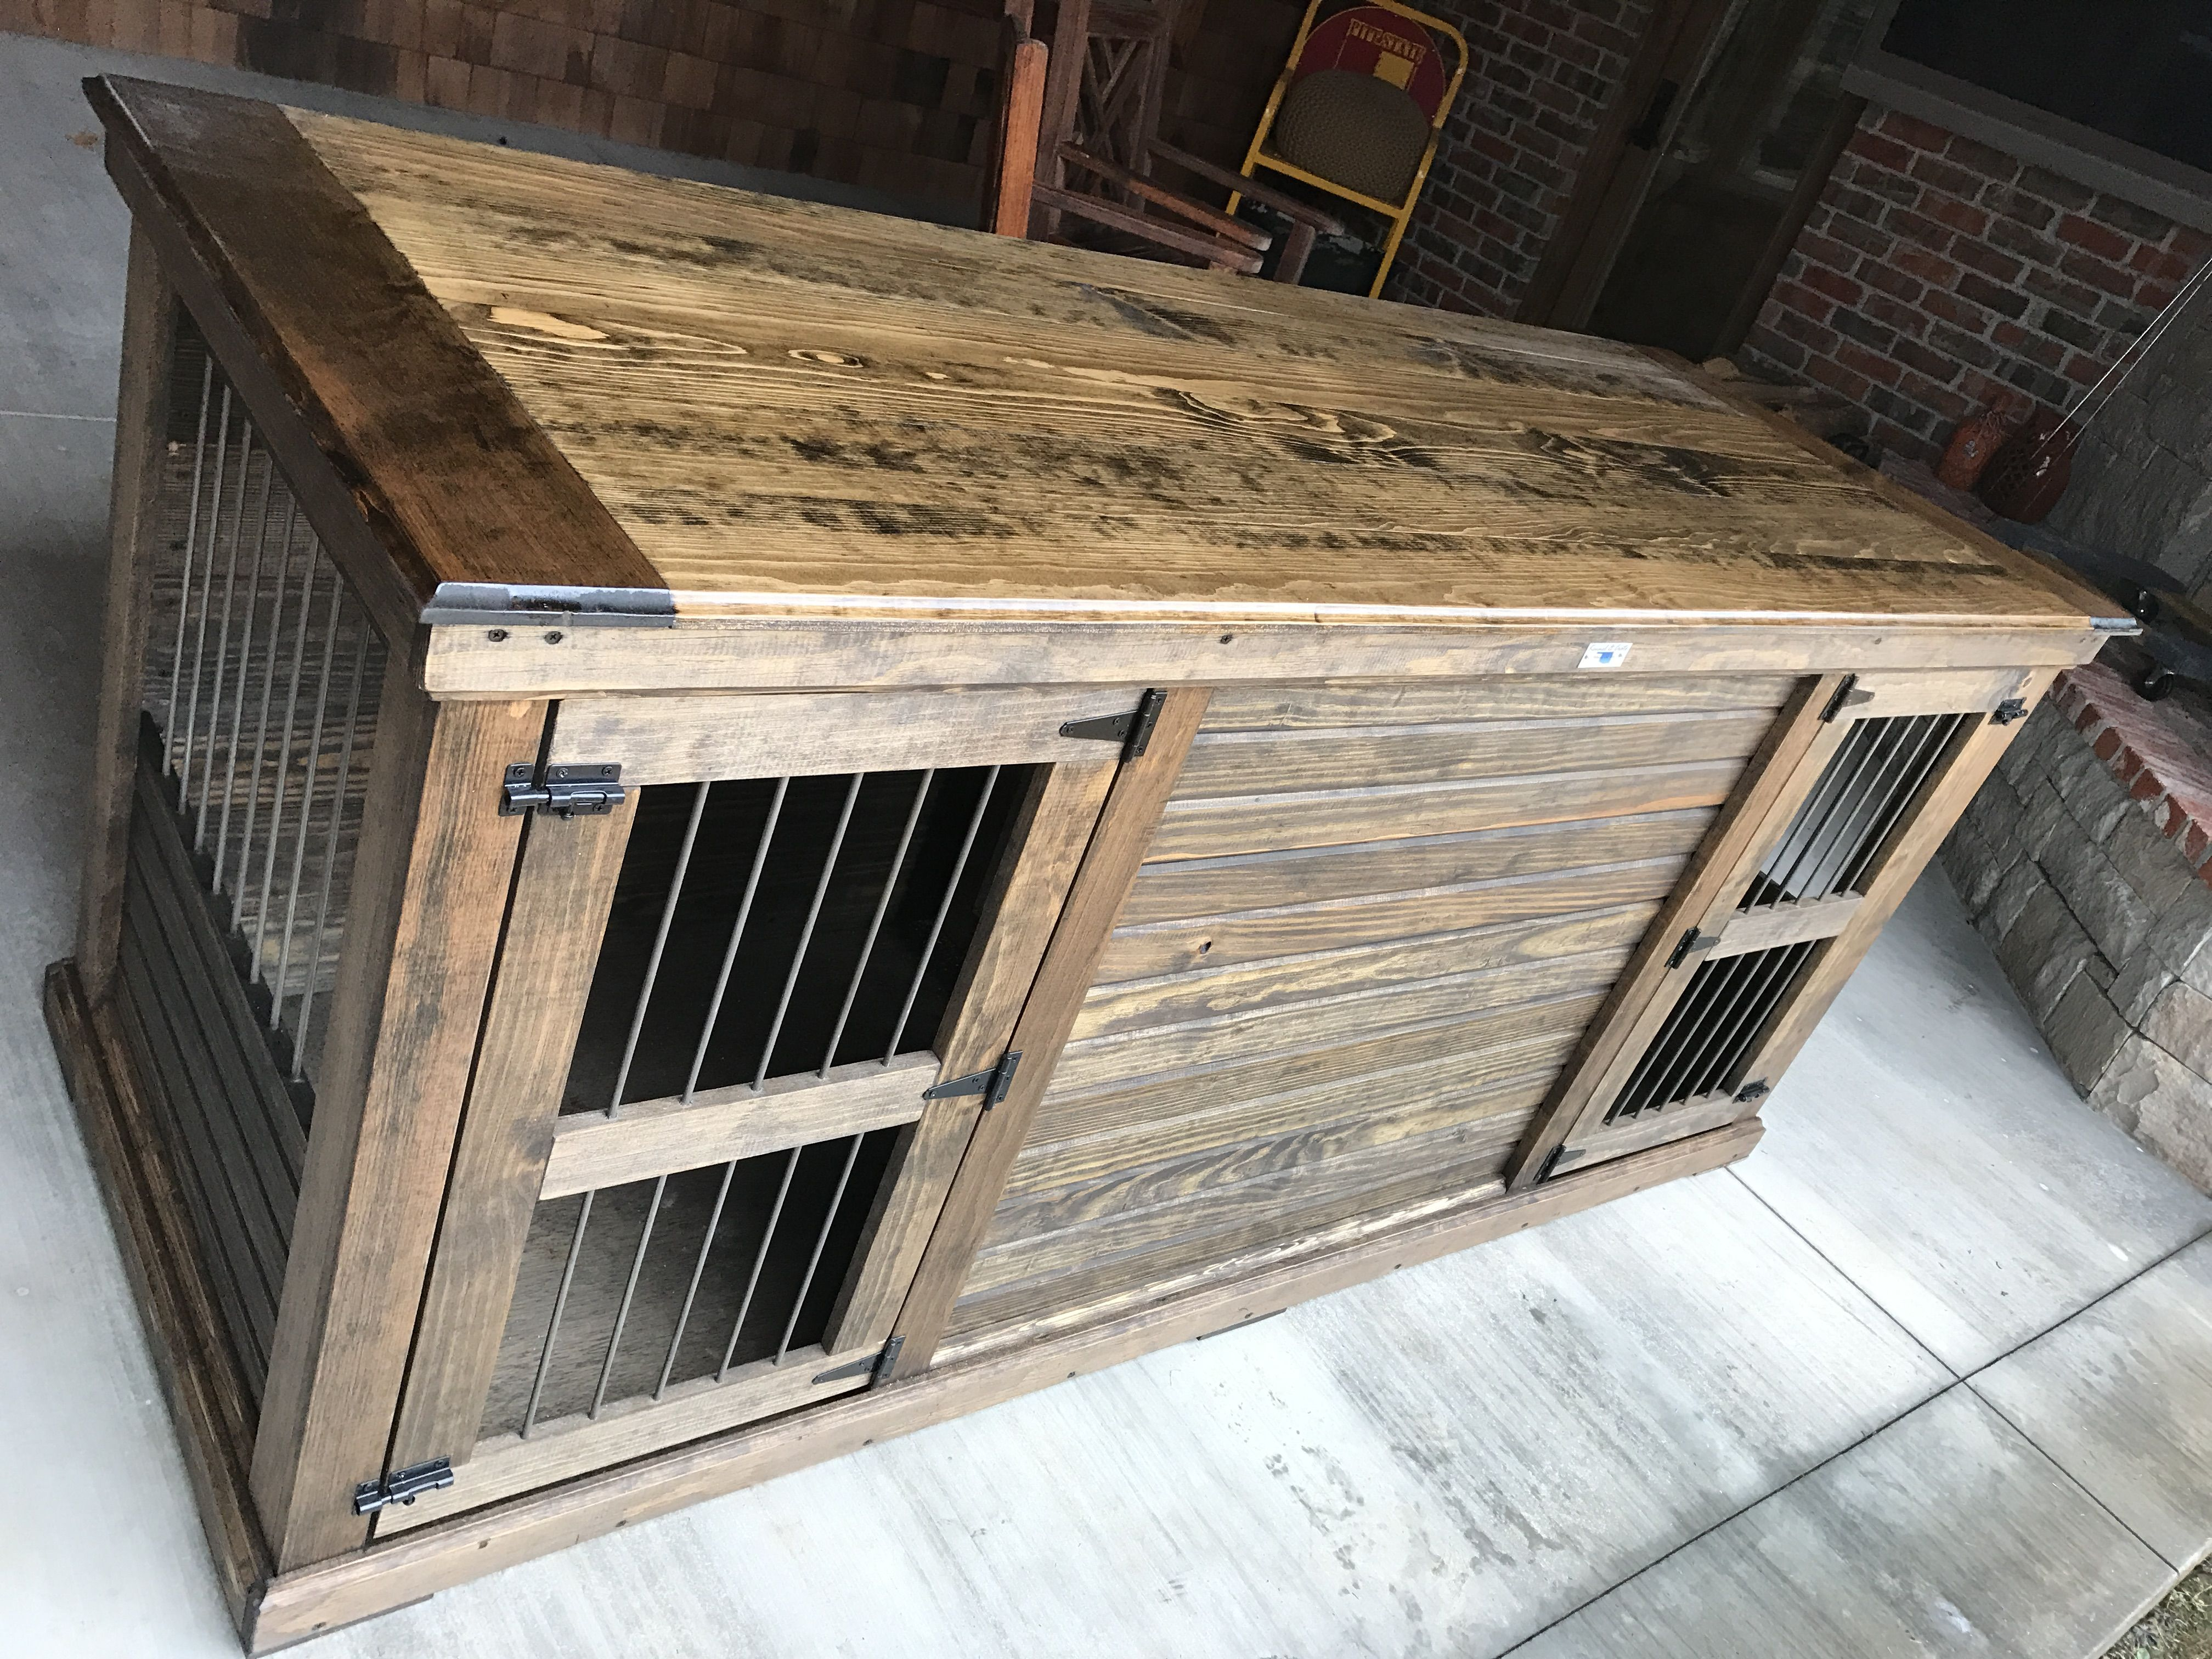 Furniture for the Big Dogs! Extra Large Double outer Dimensions: 84Widex32Deepx40Tall.  Our double kennels come with a standard center door, that allows for two separeate spaces or latch it back for one wide opened area for your pack to snuggle! Check out our website https://www.kennelandcrate.com/ for pricing and finish options!  Not big enough?  We can custom design one for you!  I think this would be a kill kitchen island or entertainment piece! $1295